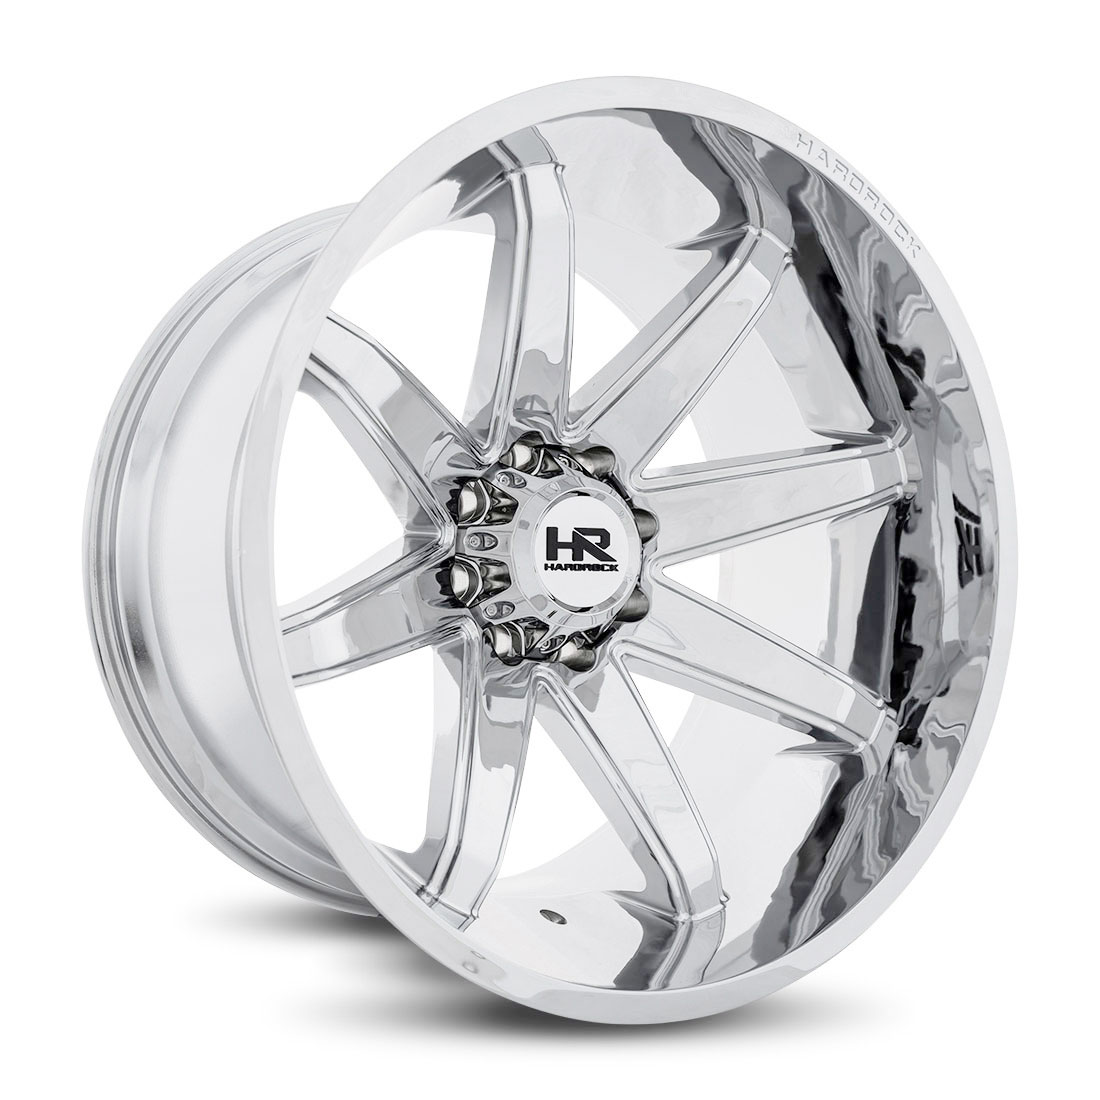 Hardrock Offroad Wheels H502 Painkiller-Xposed - Chrome - 24x14